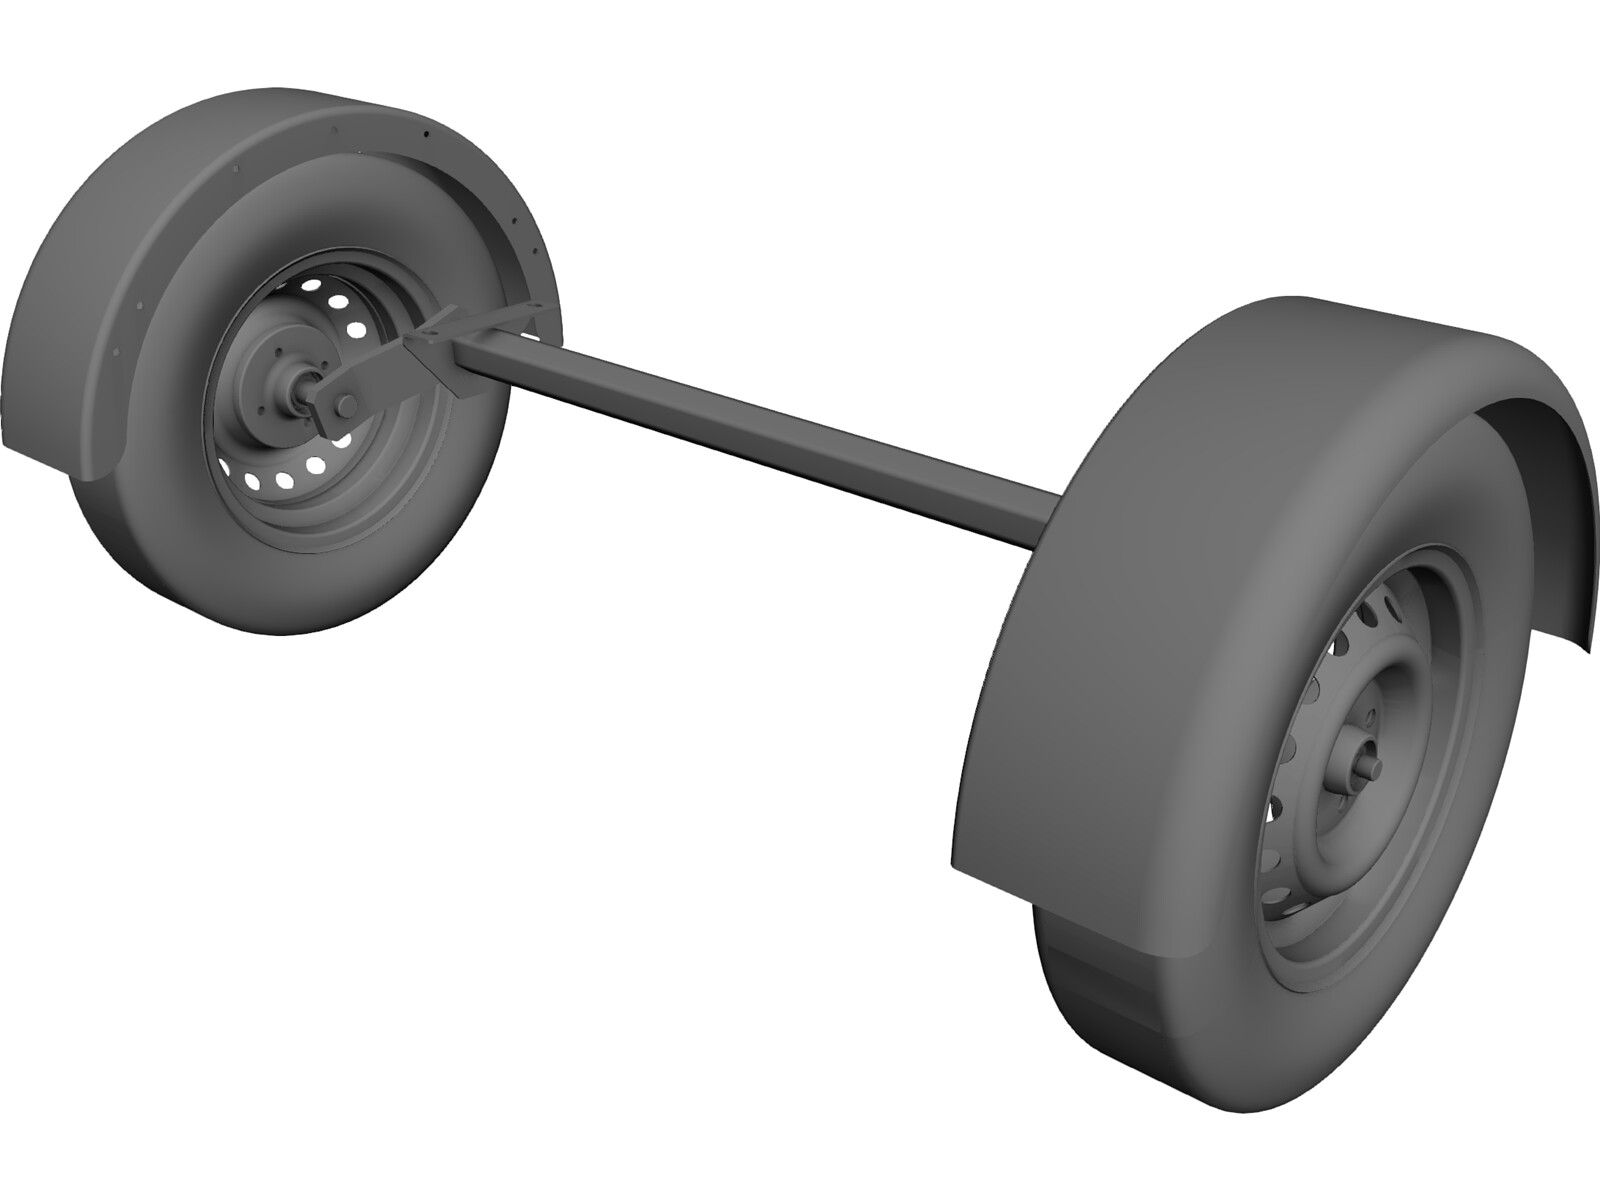 What Is Wheel And Axle together with Wheel And Axle Cartoon also Wheel And Axle also Wheel And Axle Definition as well Wheel And Axle Simple Machine. on wheel and axel